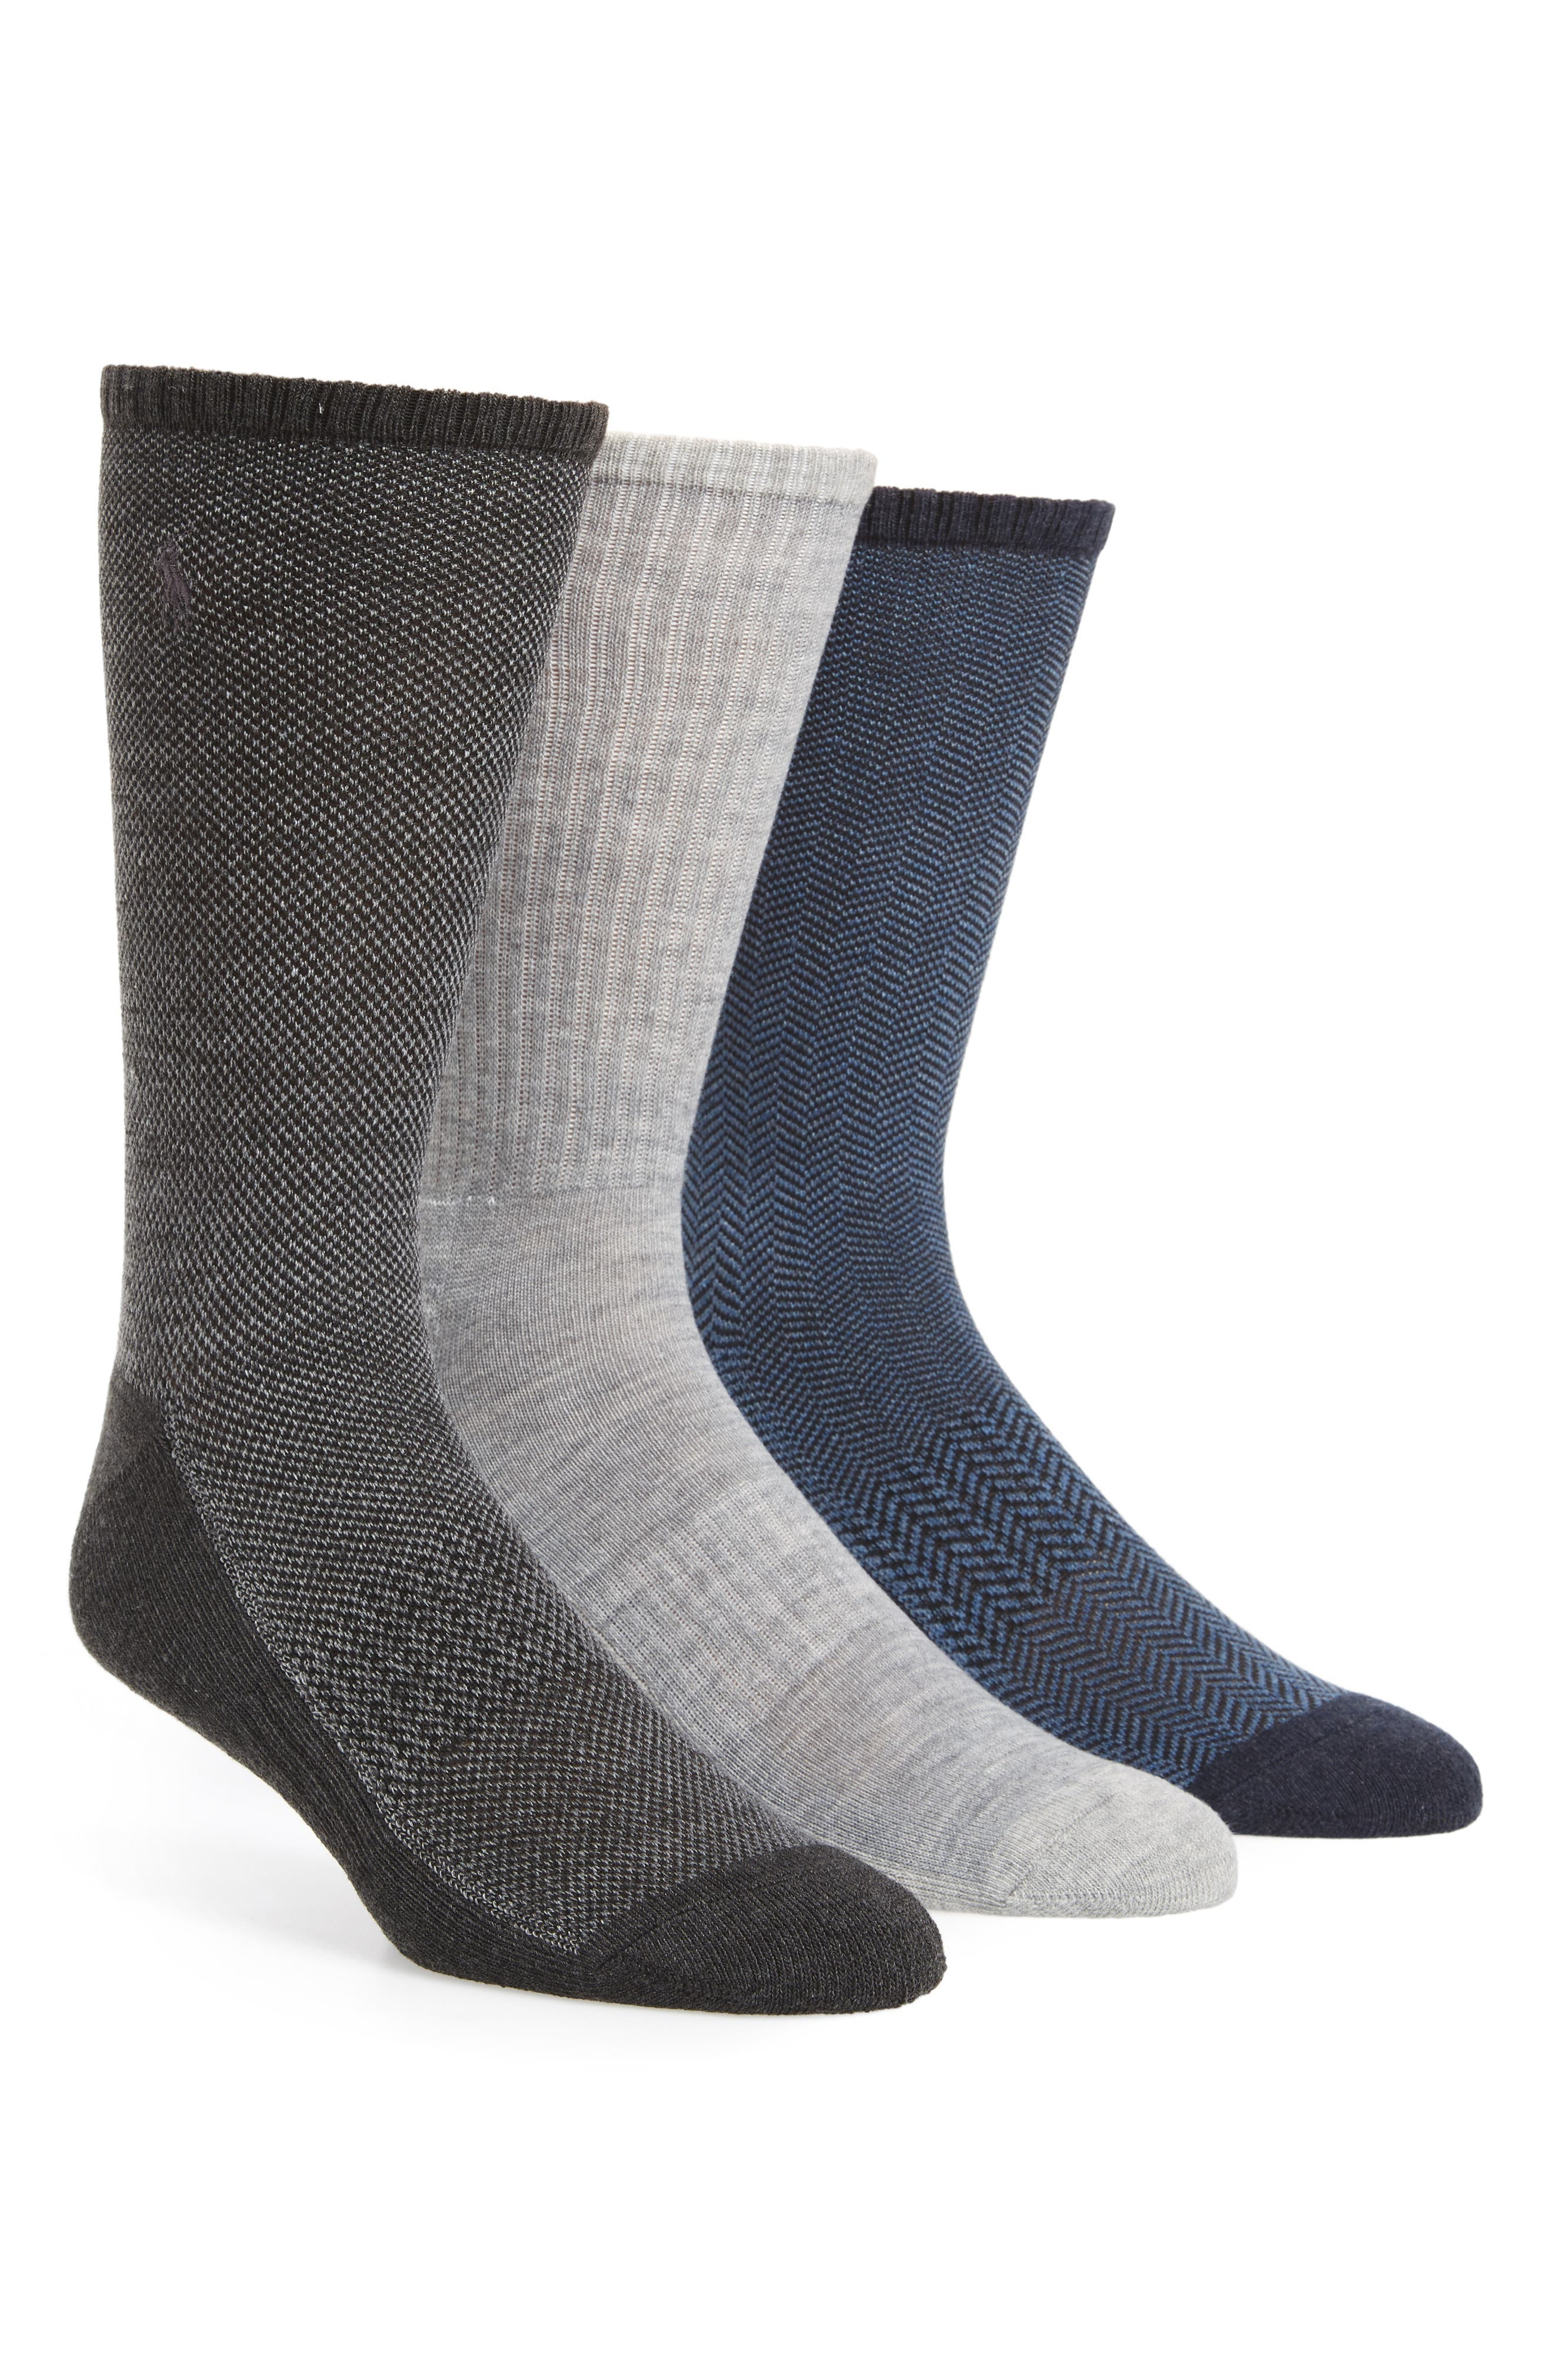 3-Pack Crew Socks,                             Main thumbnail 1, color,                             029